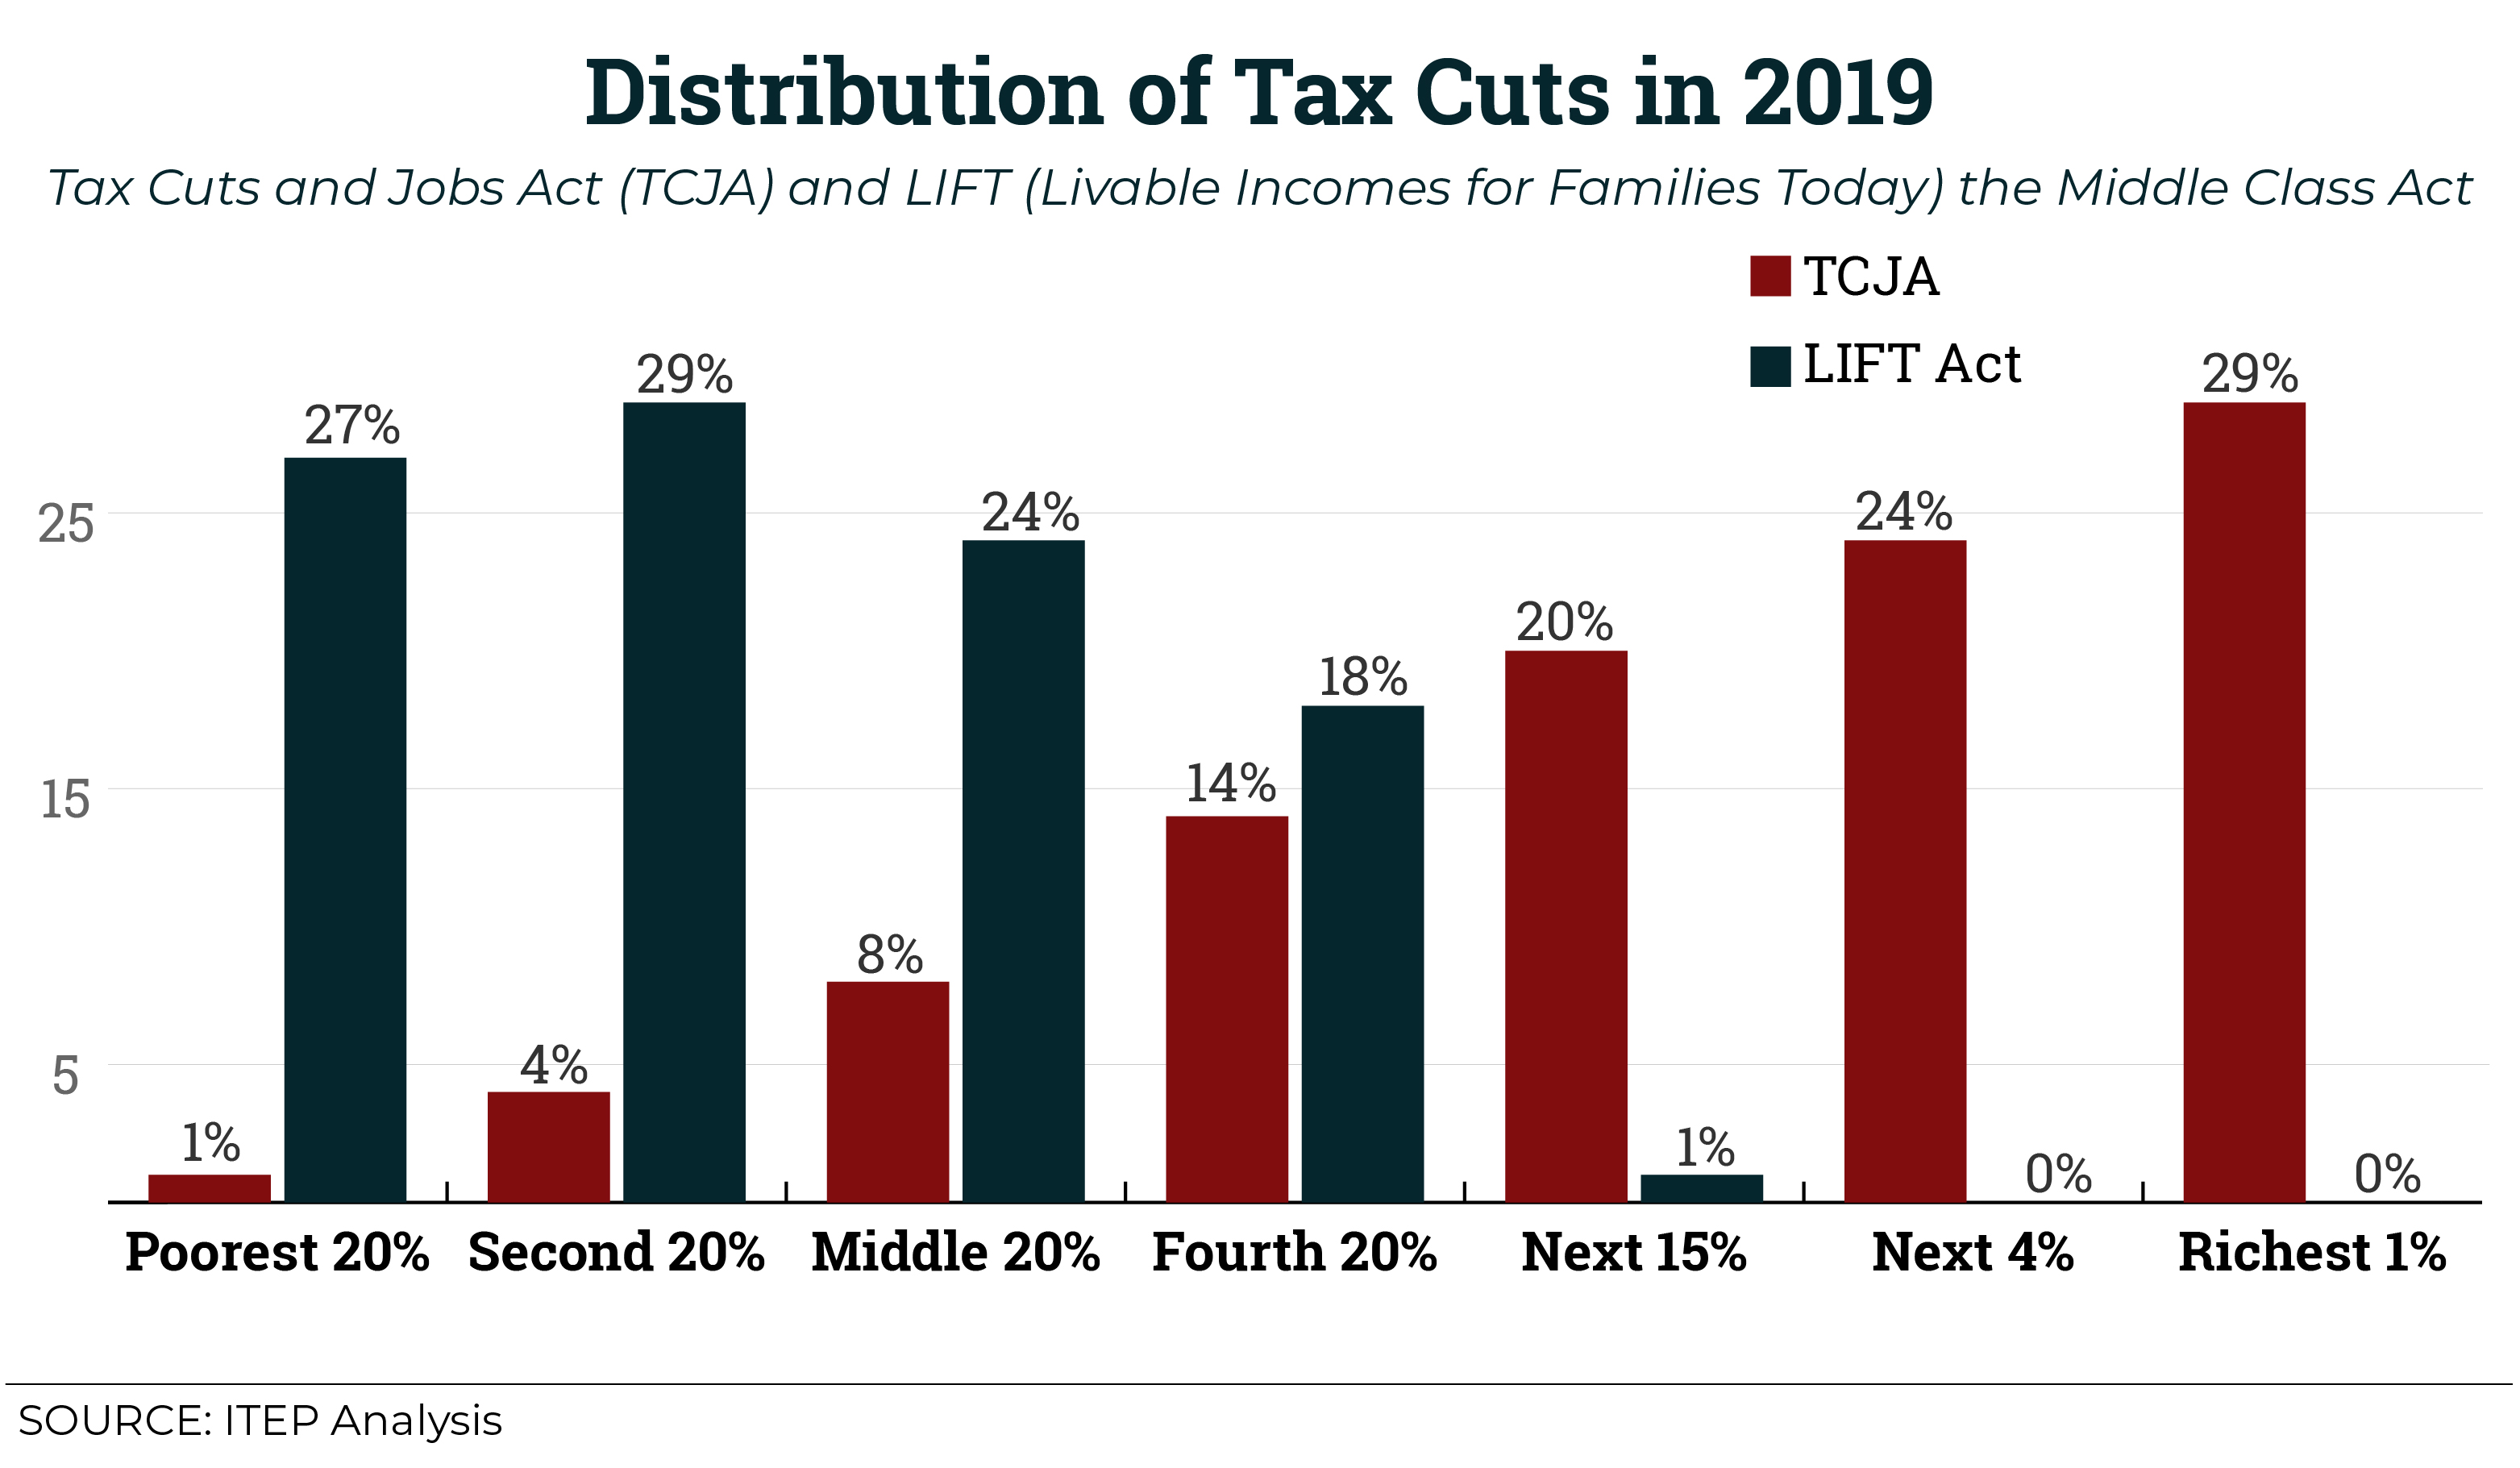 Shaking up TCJA: How a Proposed New Credit Could Shift Federal Tax Cuts from the Wealthy and Corporations to Working People